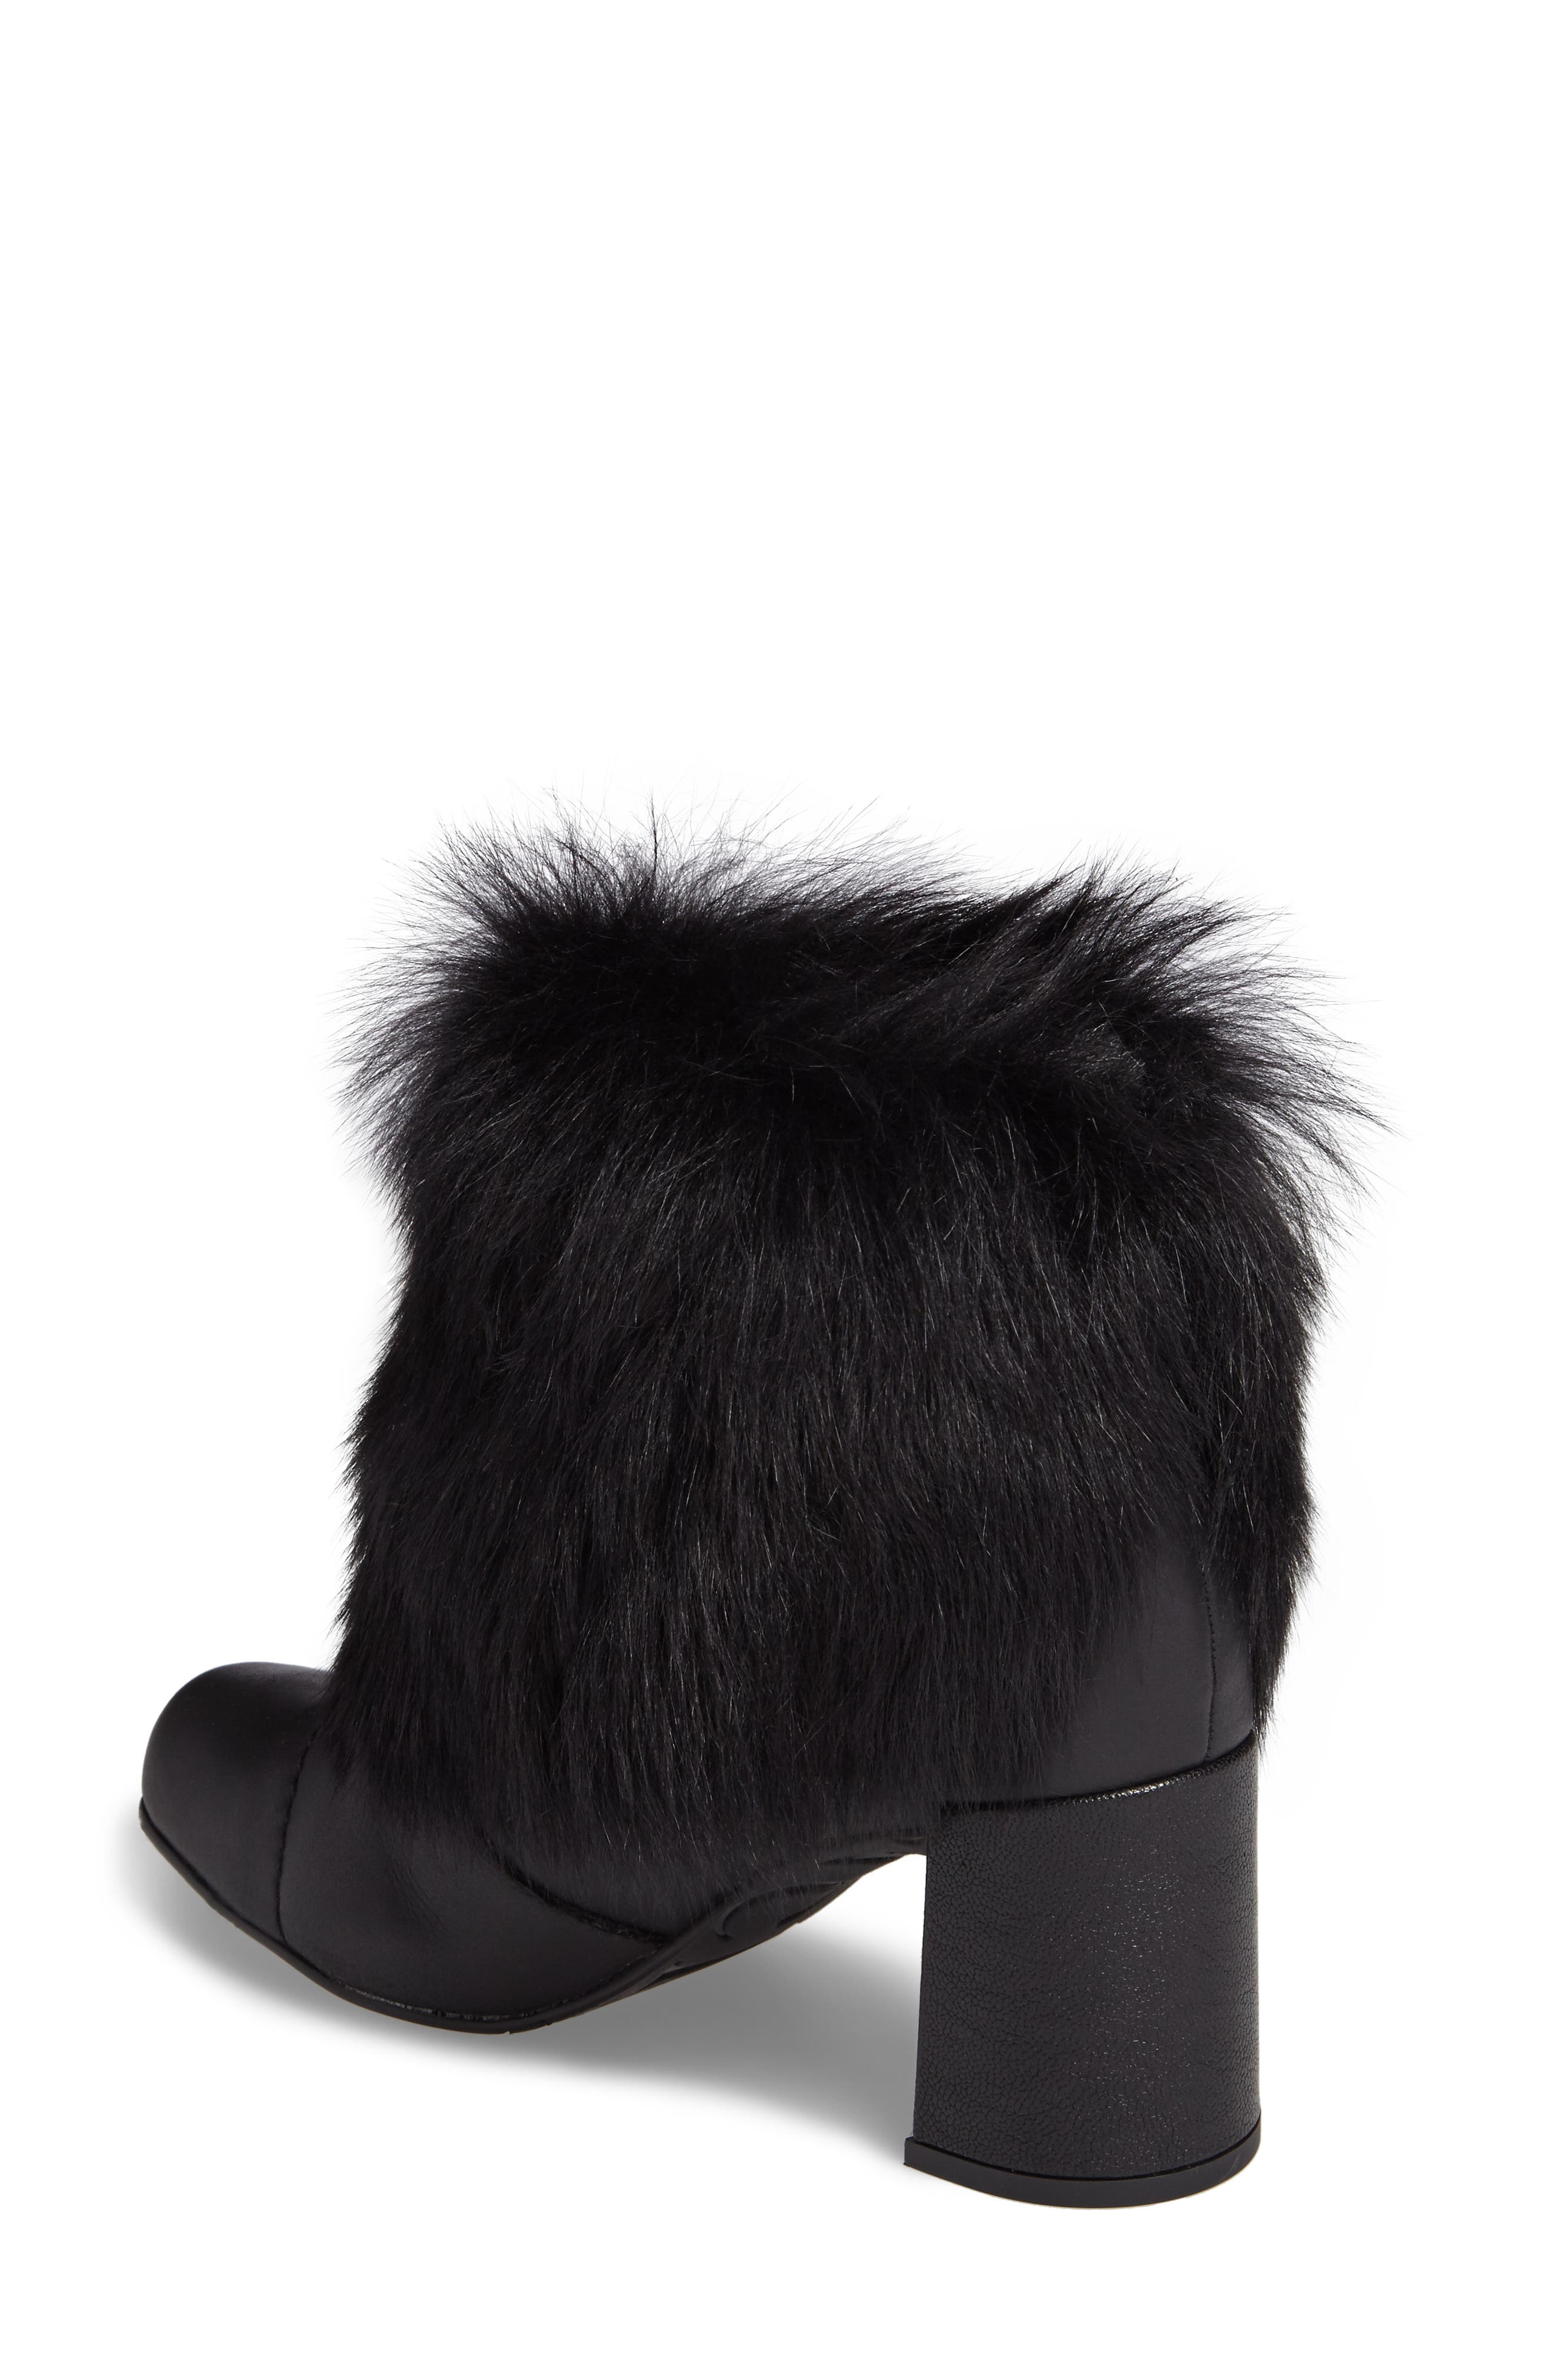 Woka Genuine Shearling Bootie,                             Alternate thumbnail 2, color,                             001